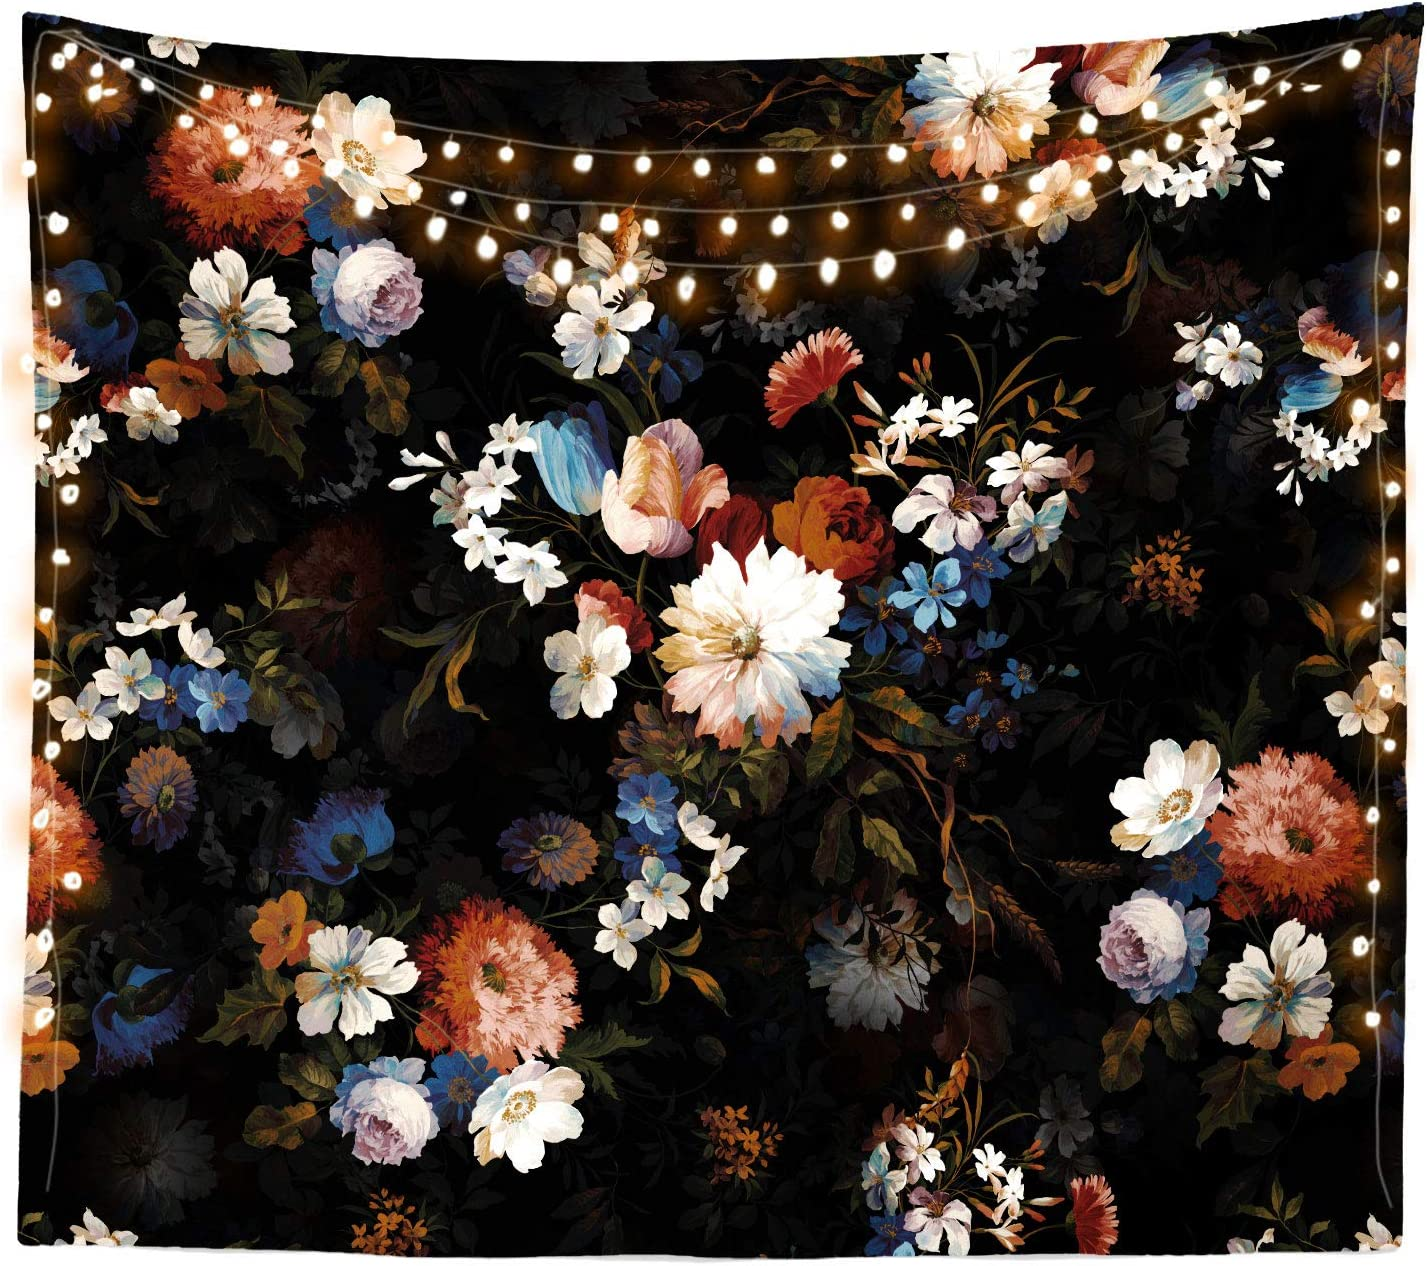 Third Goddess Tapestry Black Floral Wall Tapestry, Nature Wild Scenery Wall Hanging for Home Decor & Bedroom (50 x 60 inches)